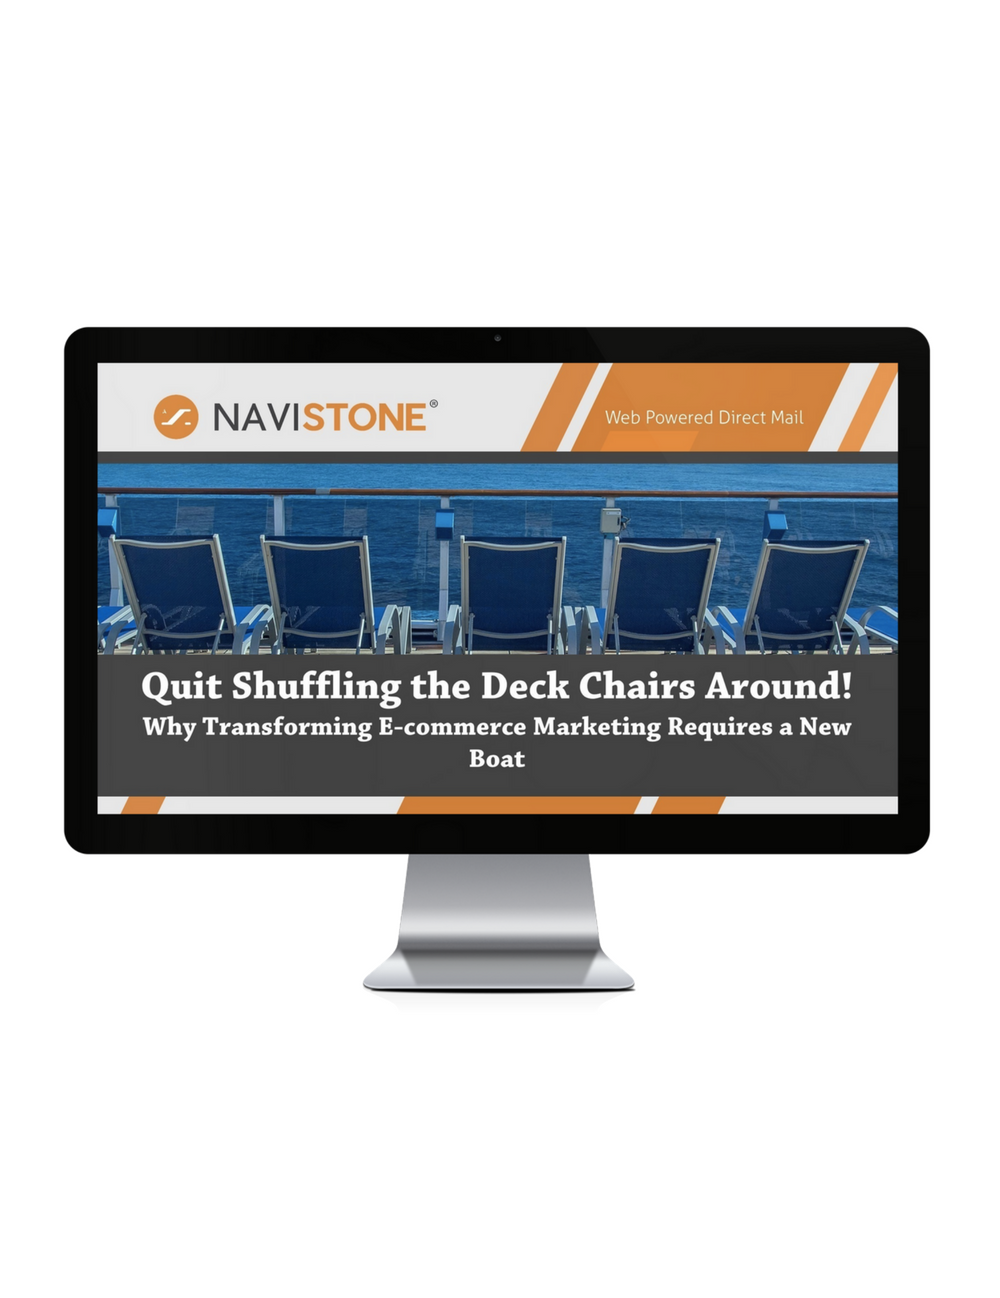 Quit Shuffling the Deck Chairs Around! Why Transforming E-commerce Marketing Requires a New Boat